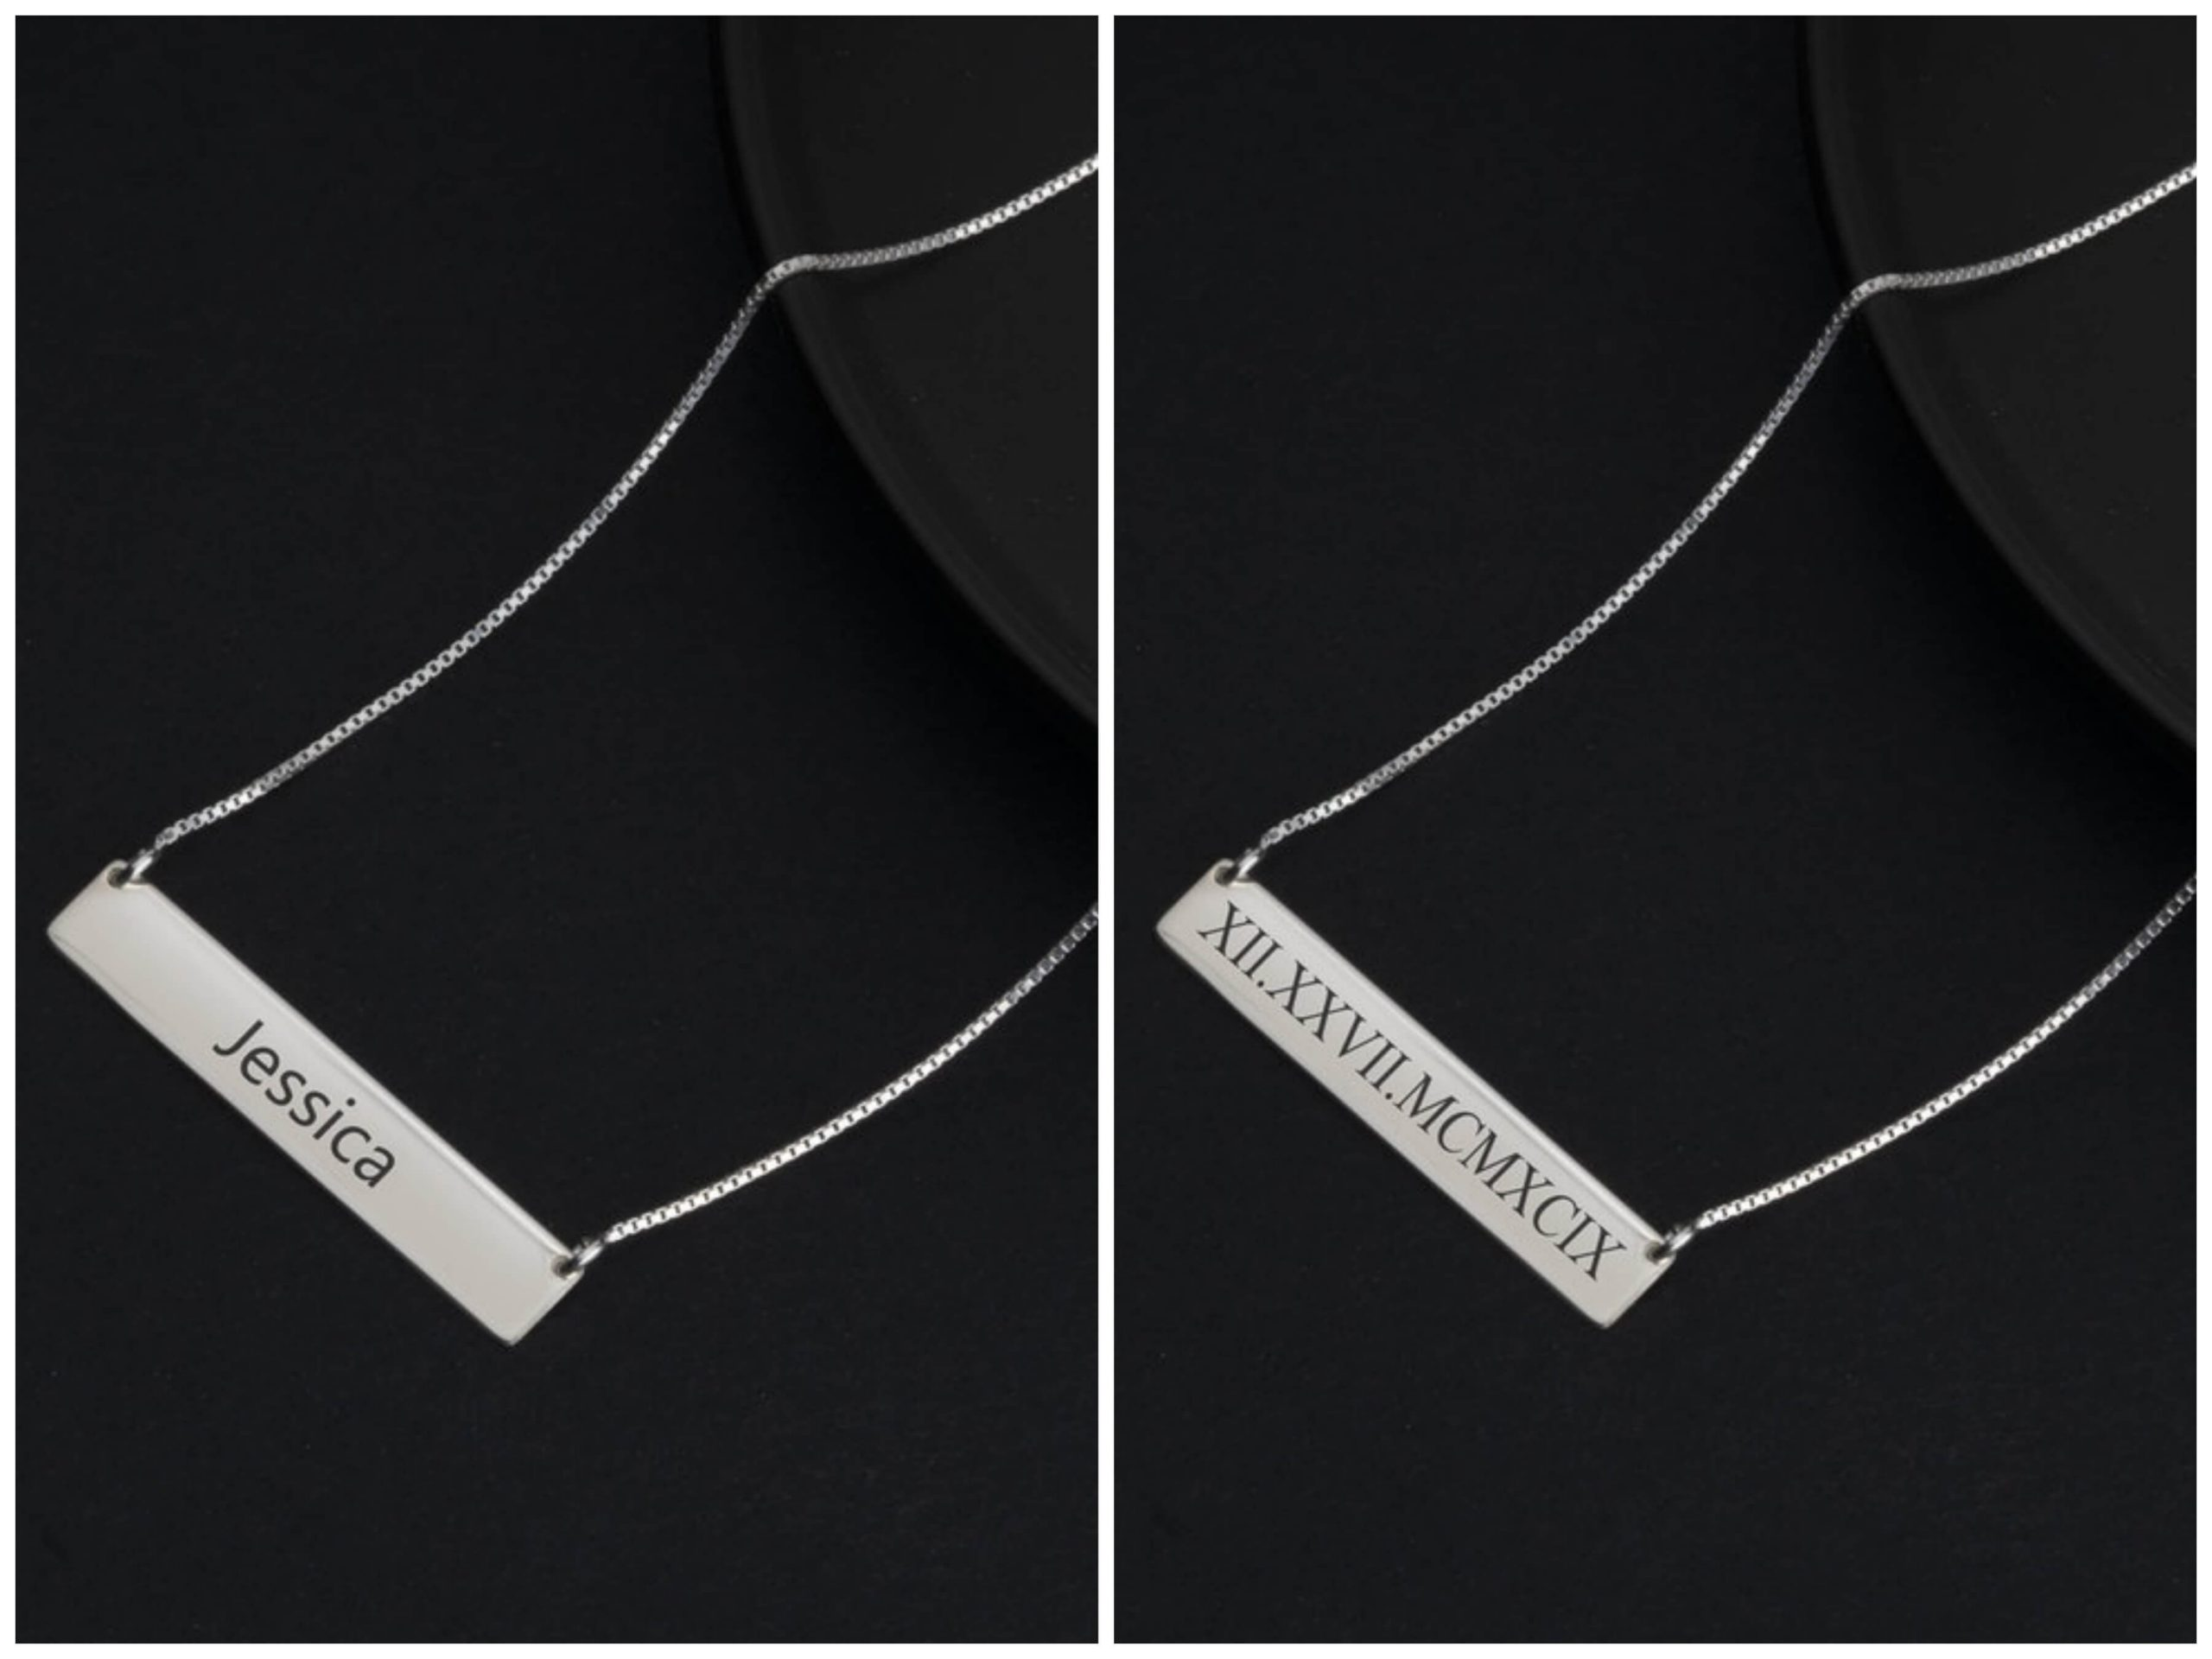 colgantes personalizados One necklace